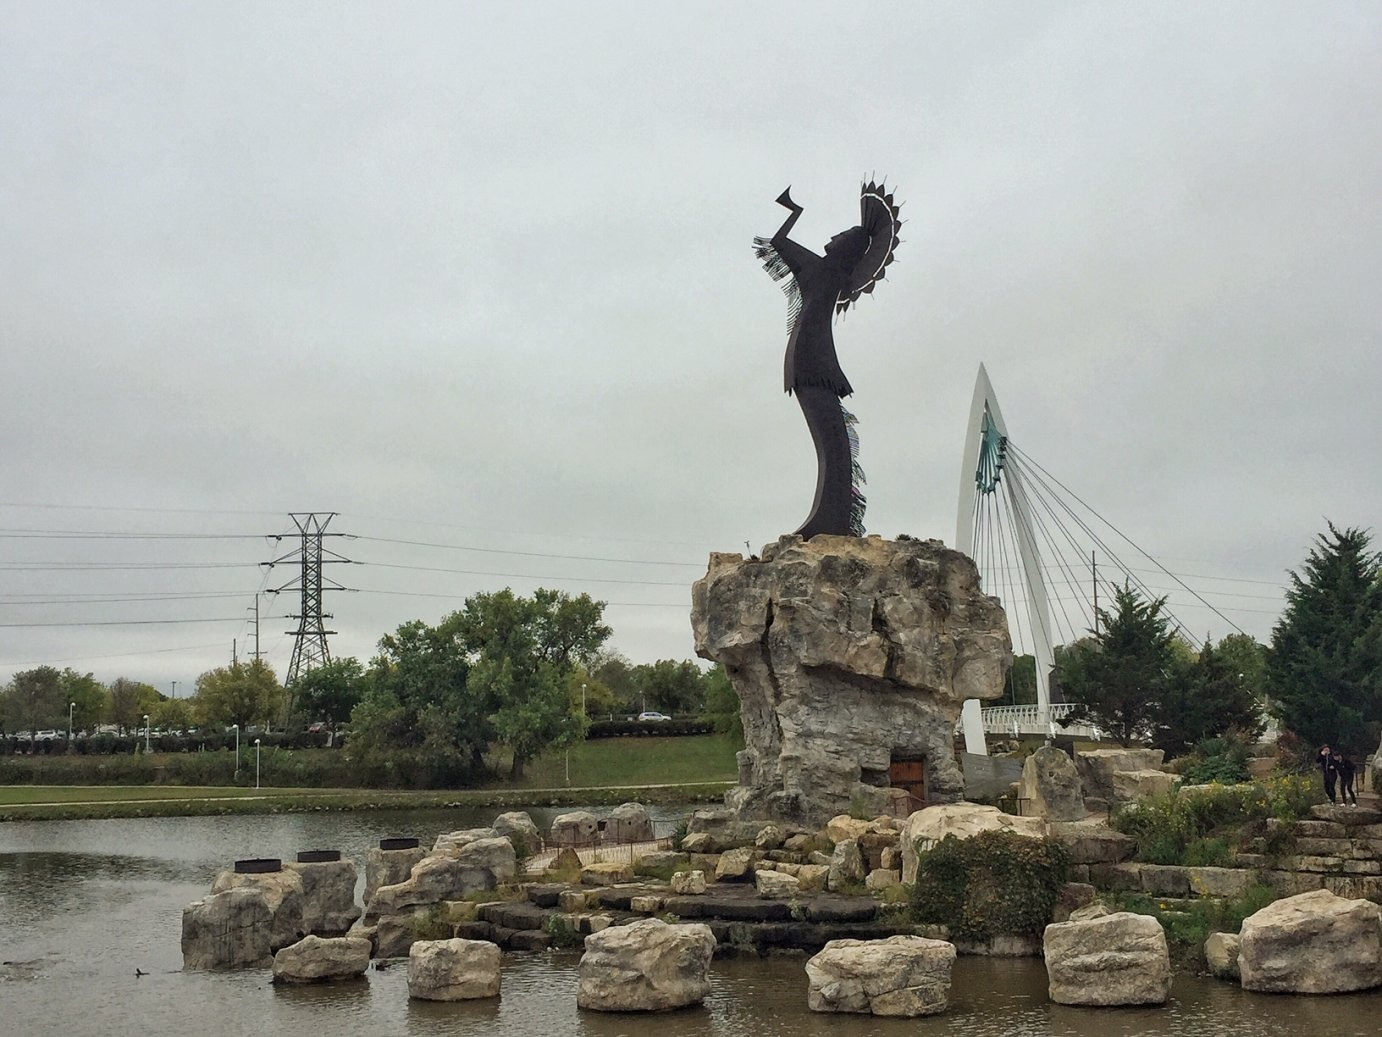 Keeper of the Plains in Wichita (Photo by J. Schafer)